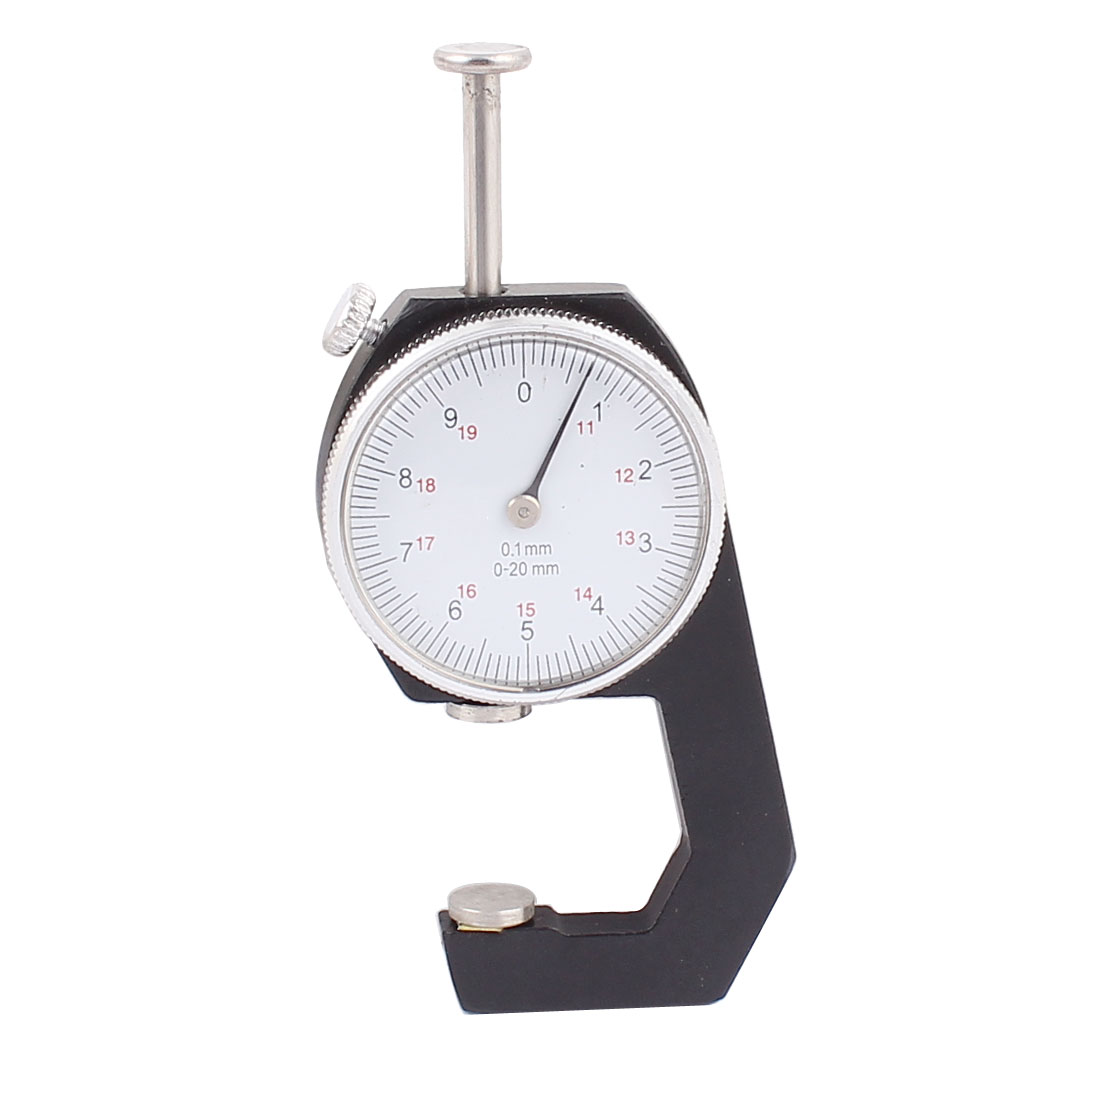 Unique Bargains 0 to 20mm 0.1mm Accuracy Dial Indicator Pocket Thickness Gauge Scale Meter by Unique-Bargains